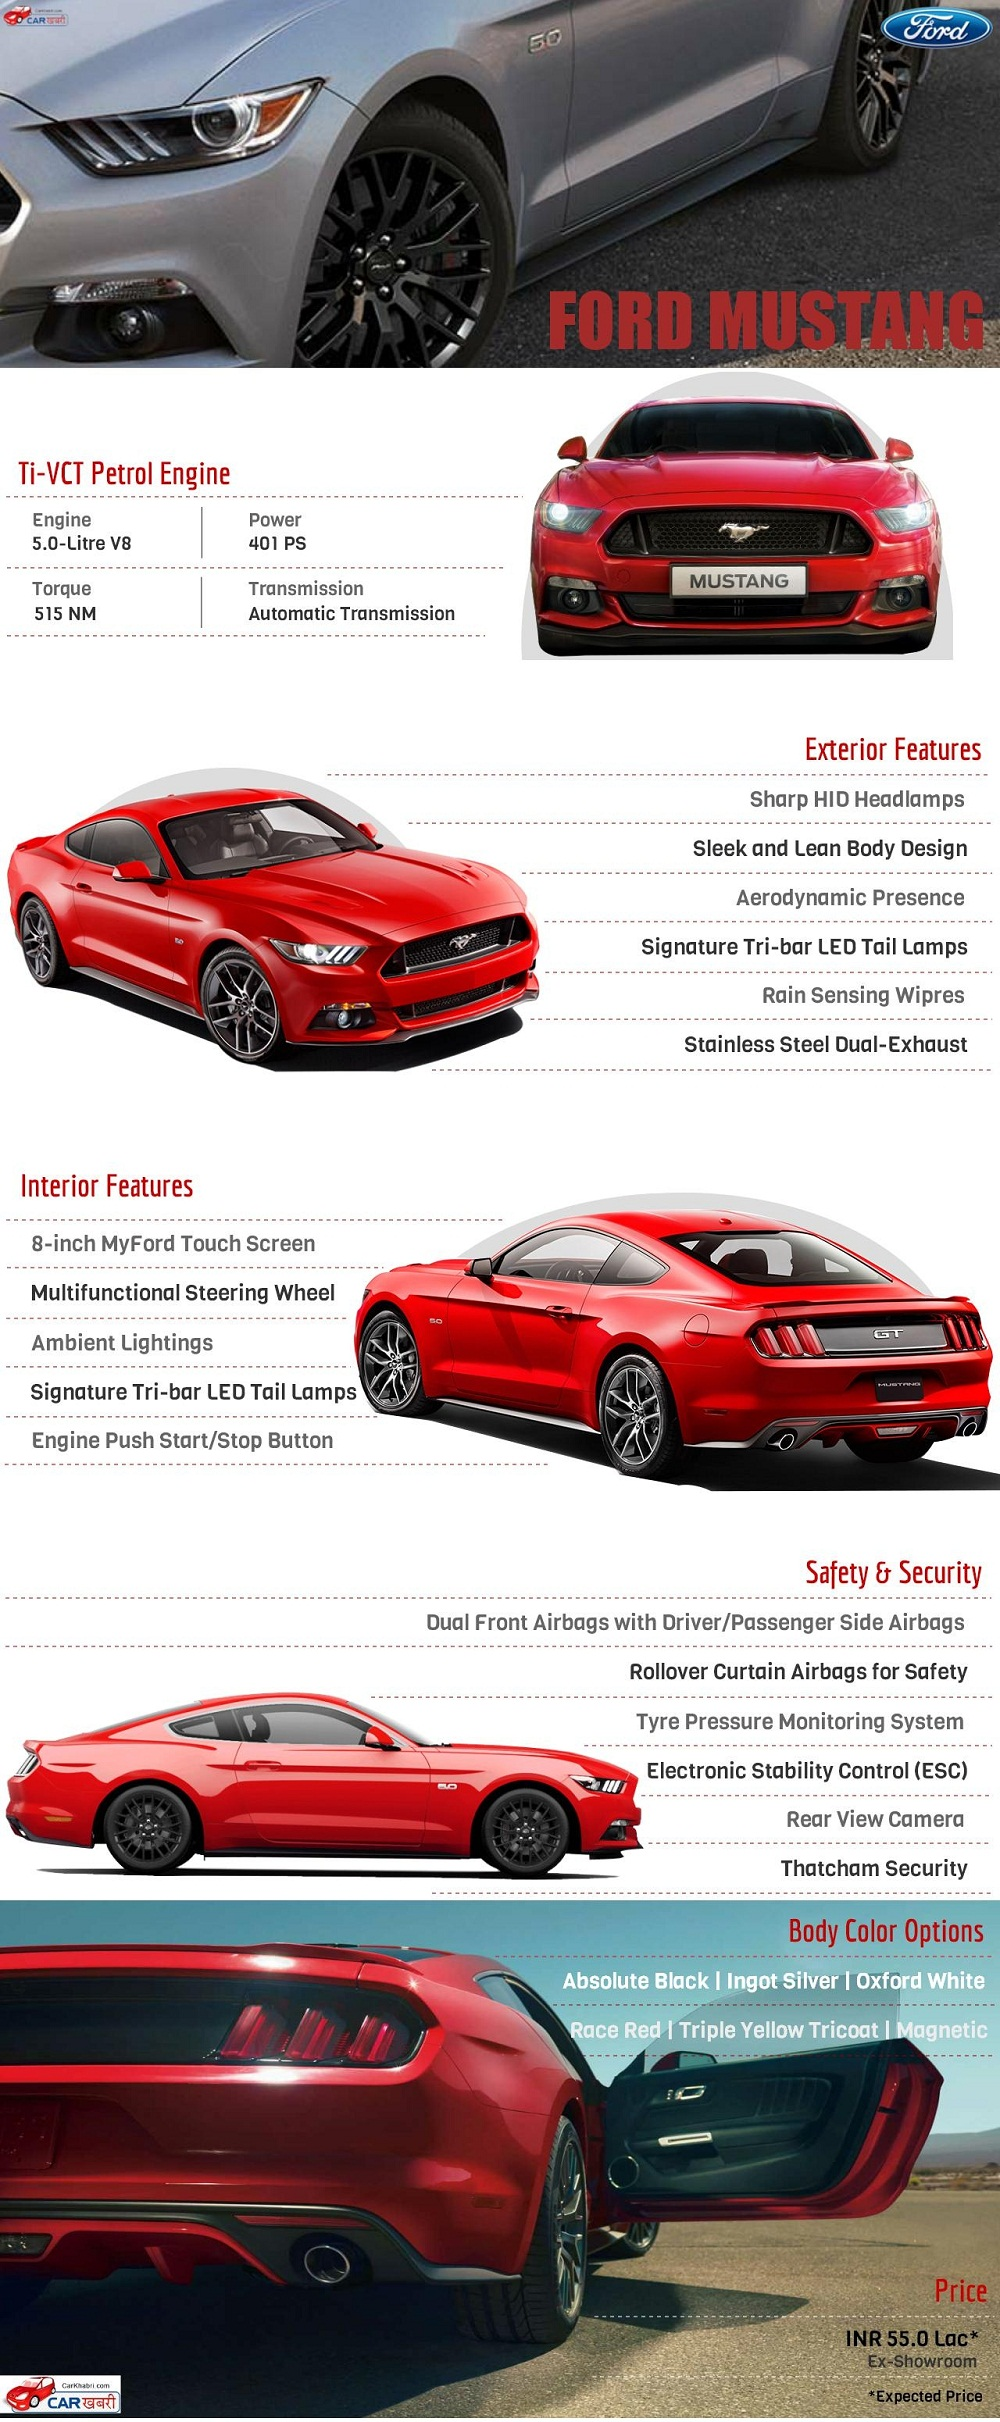 Ford Mustang India - Infographic